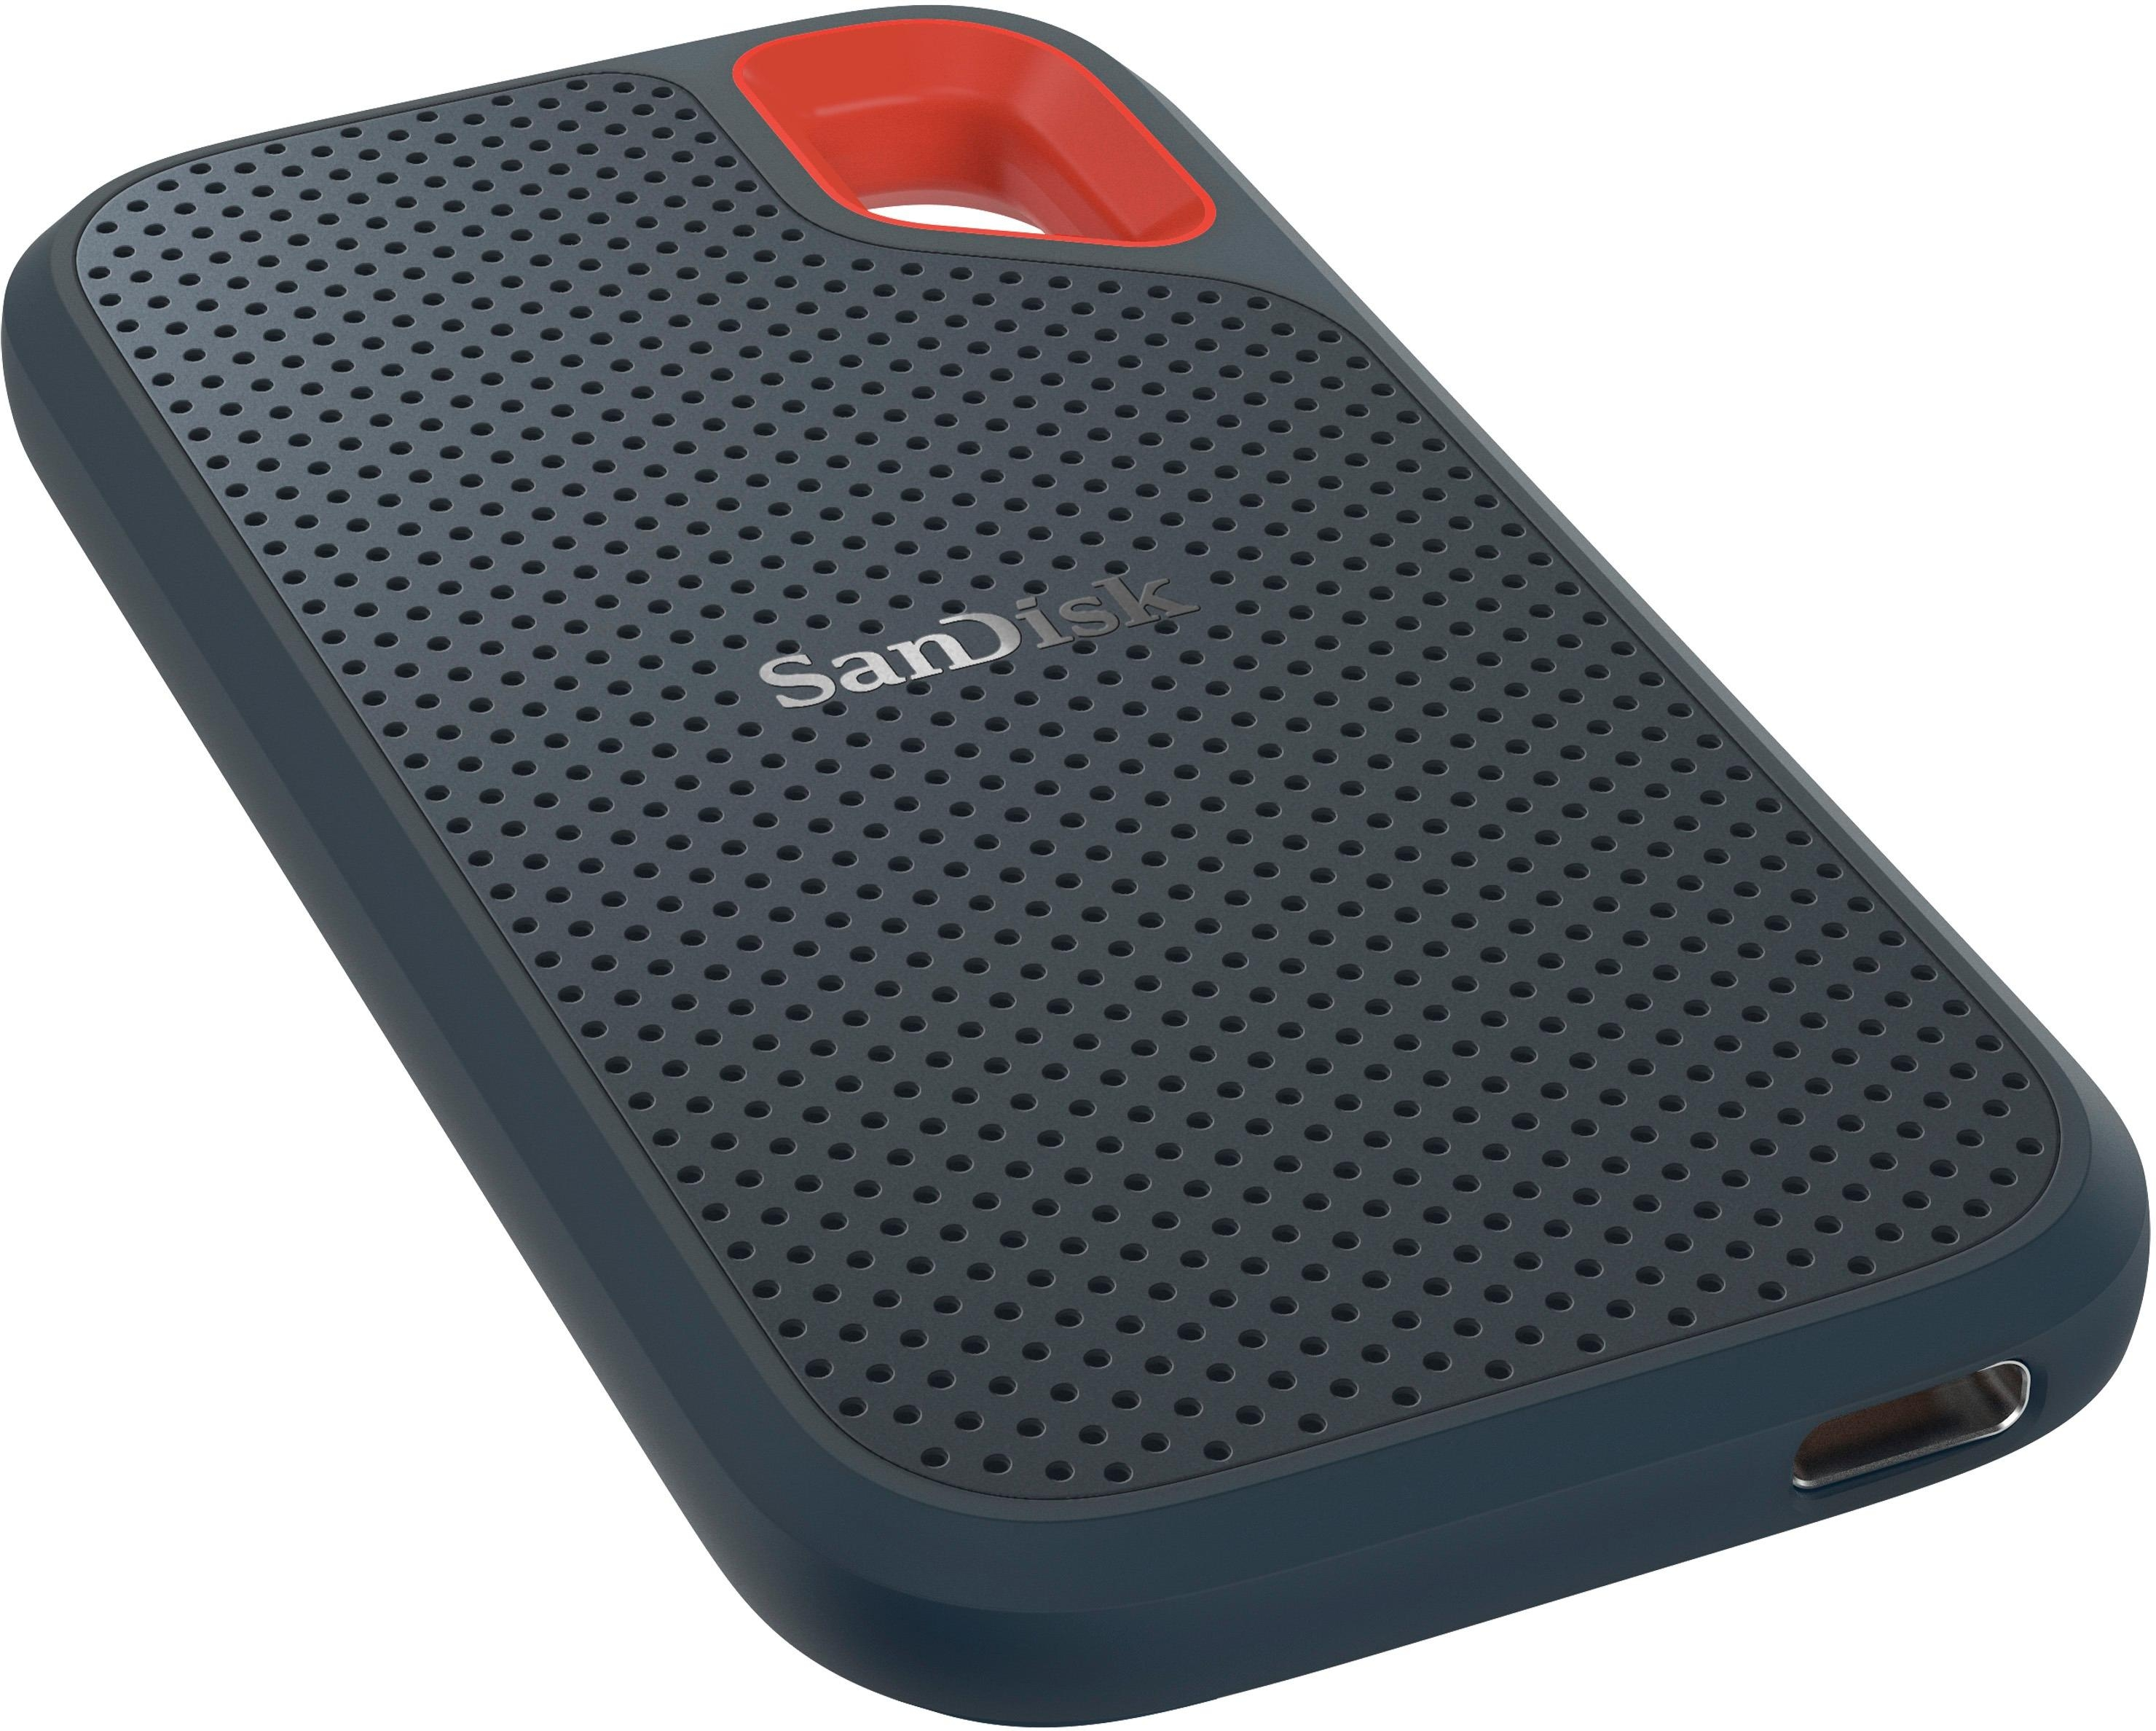 SANDISK SSD Extreme Portable 500 GB